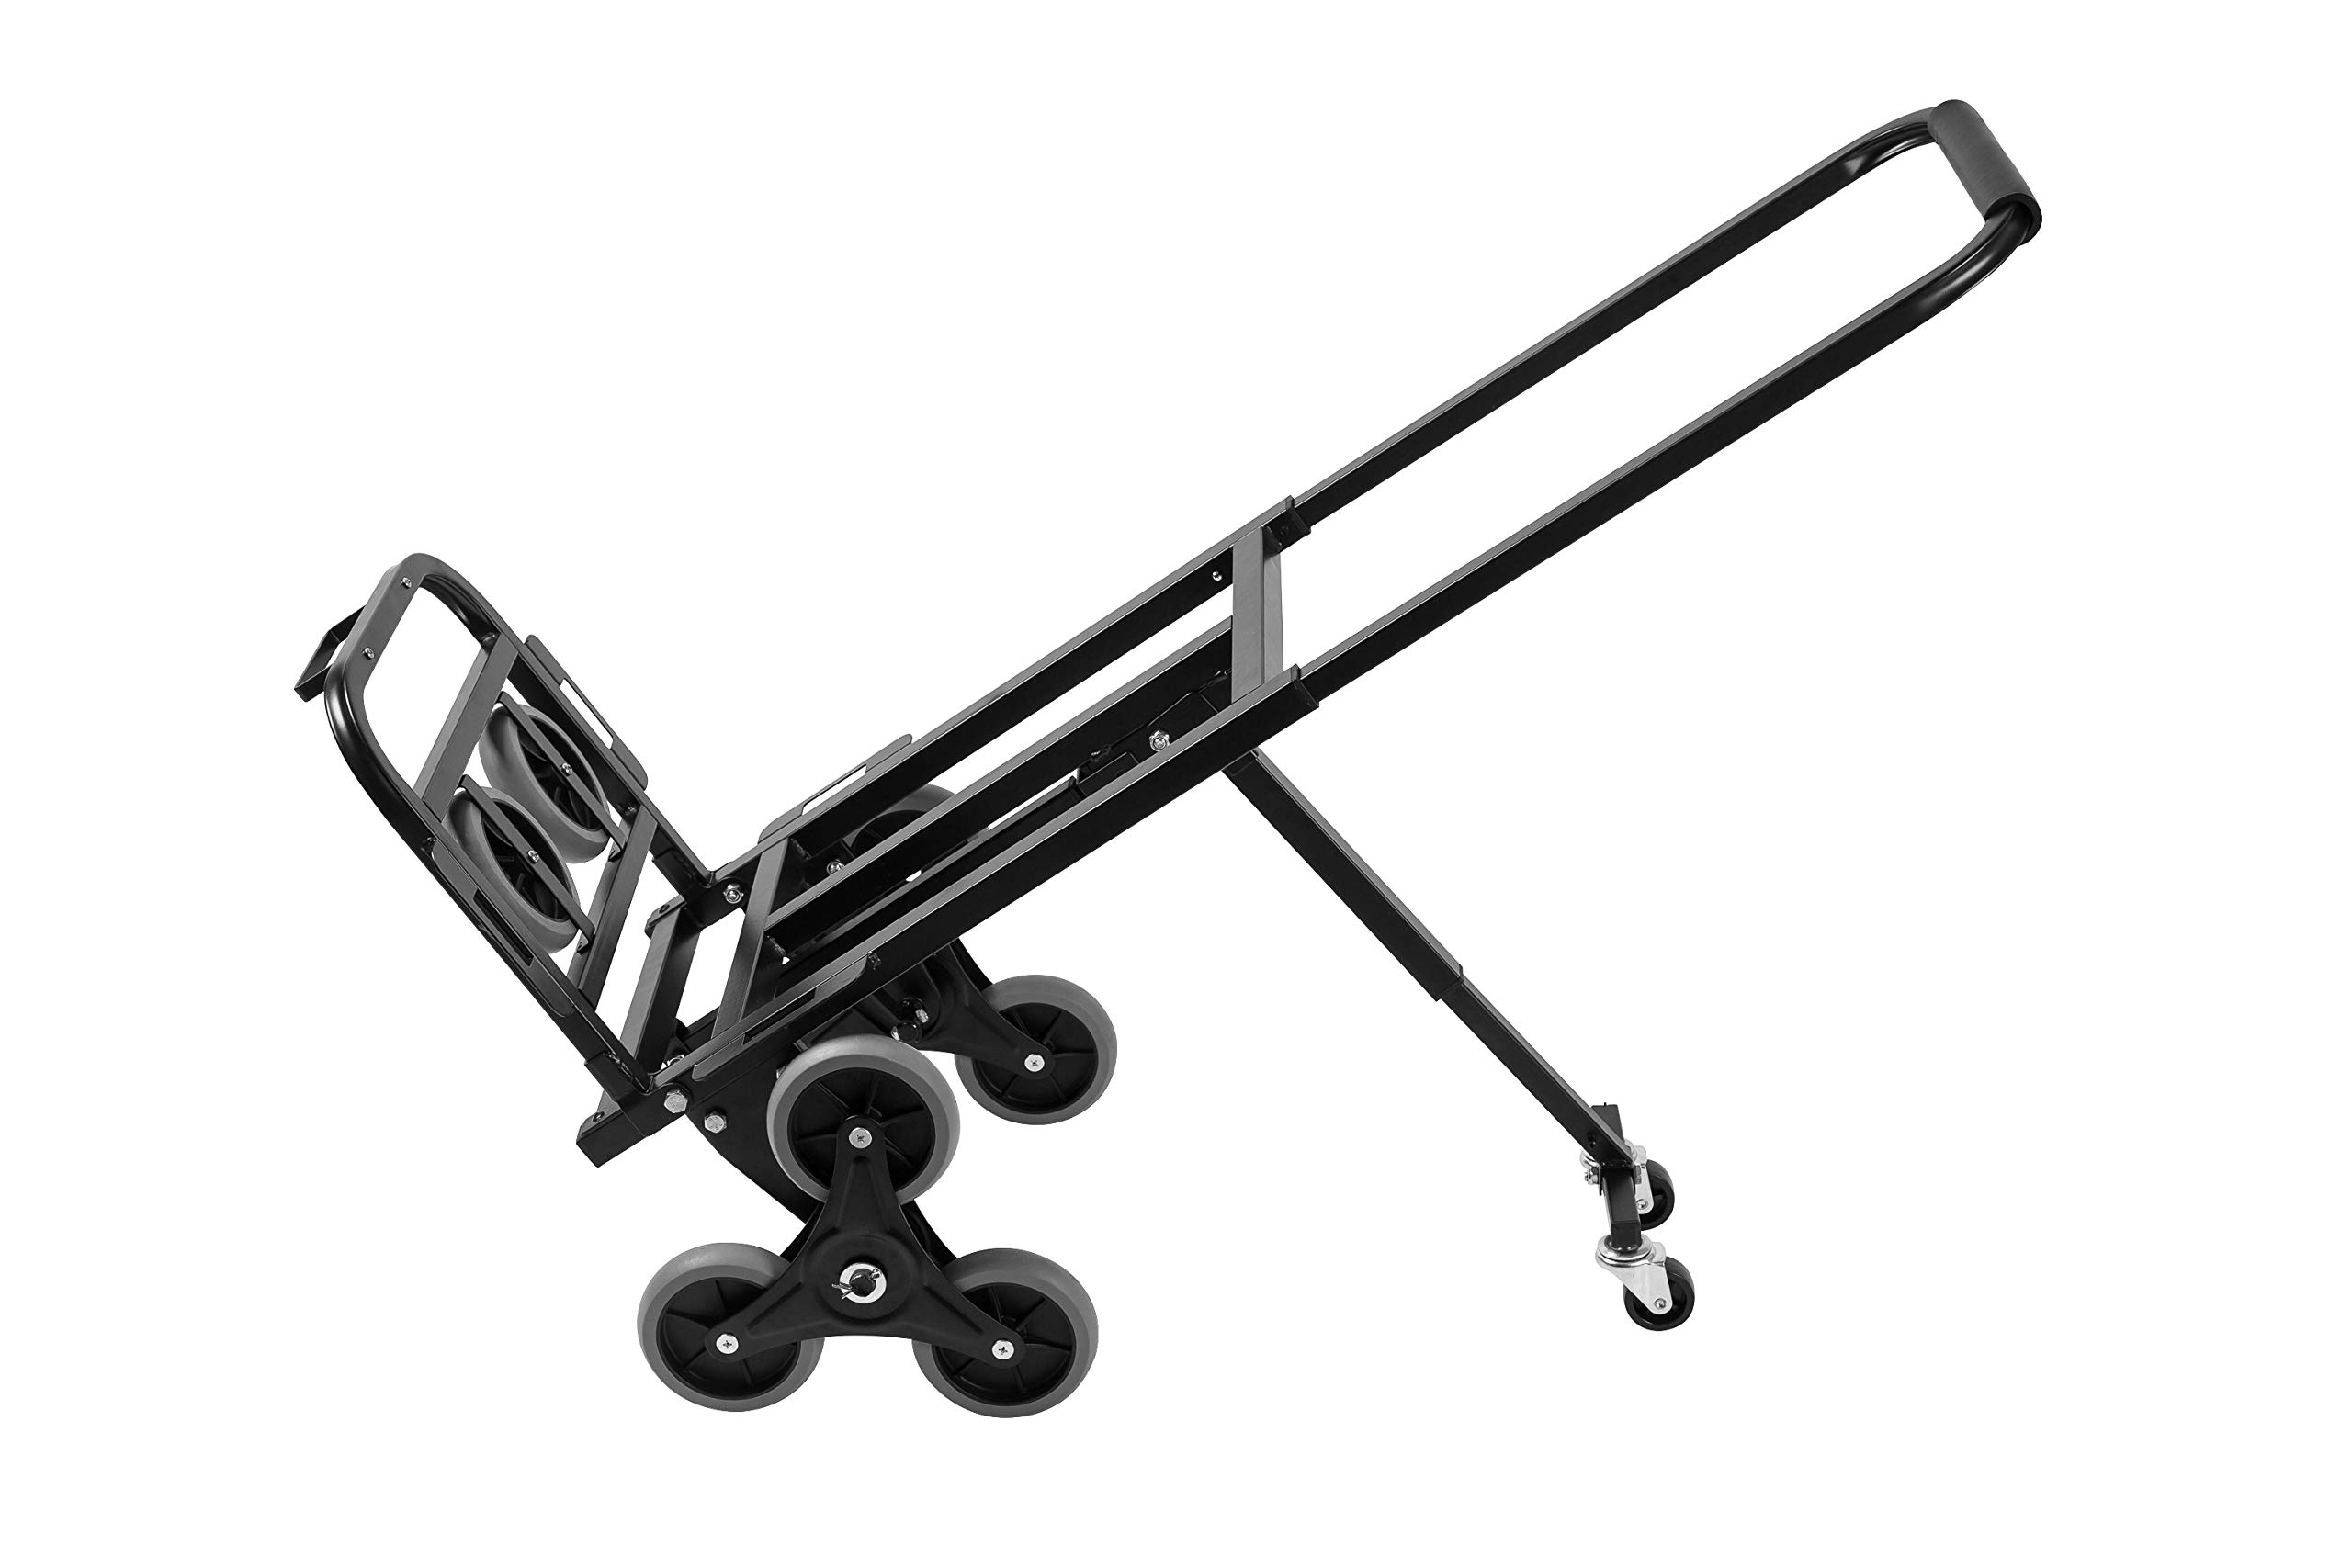 SHZOND Stair Climber Cart 330 LBS Weight Capacity Foldable Stair Climbing Hand Truck with 2 Swivel Wheels and 2 Spare Wheels (Stair Climber cart)